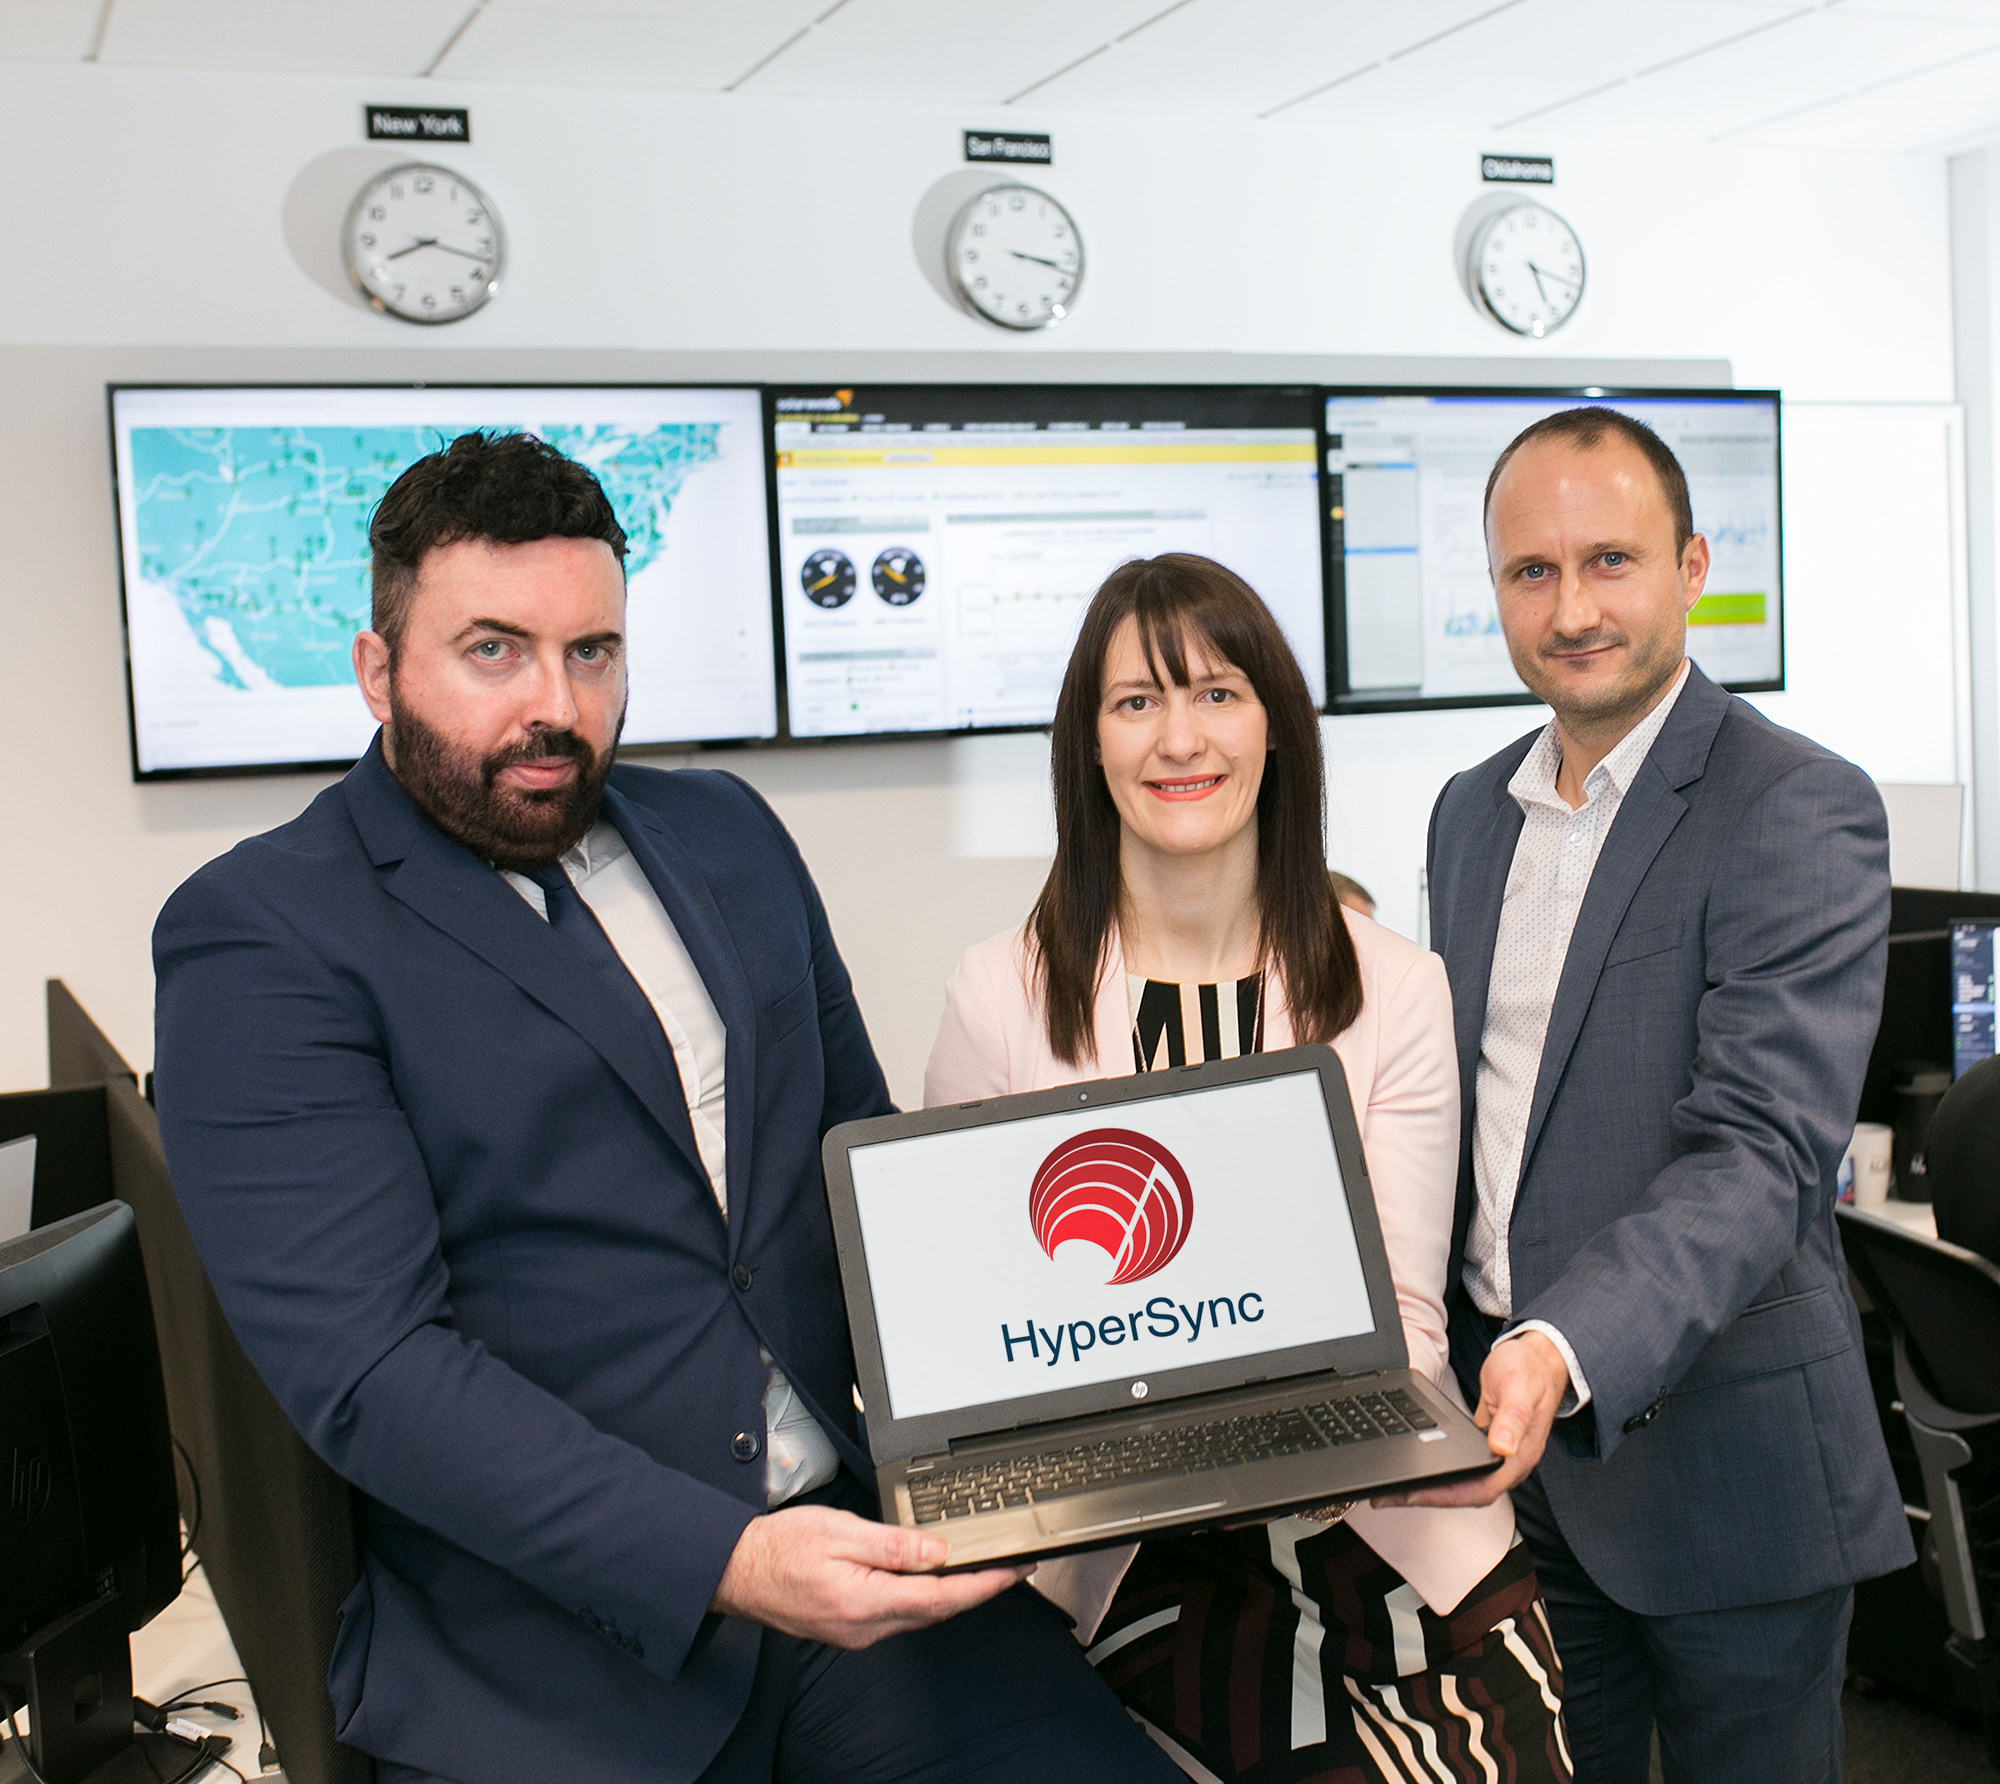 HyperSync set to create 50 new jobs at Innovation Factory